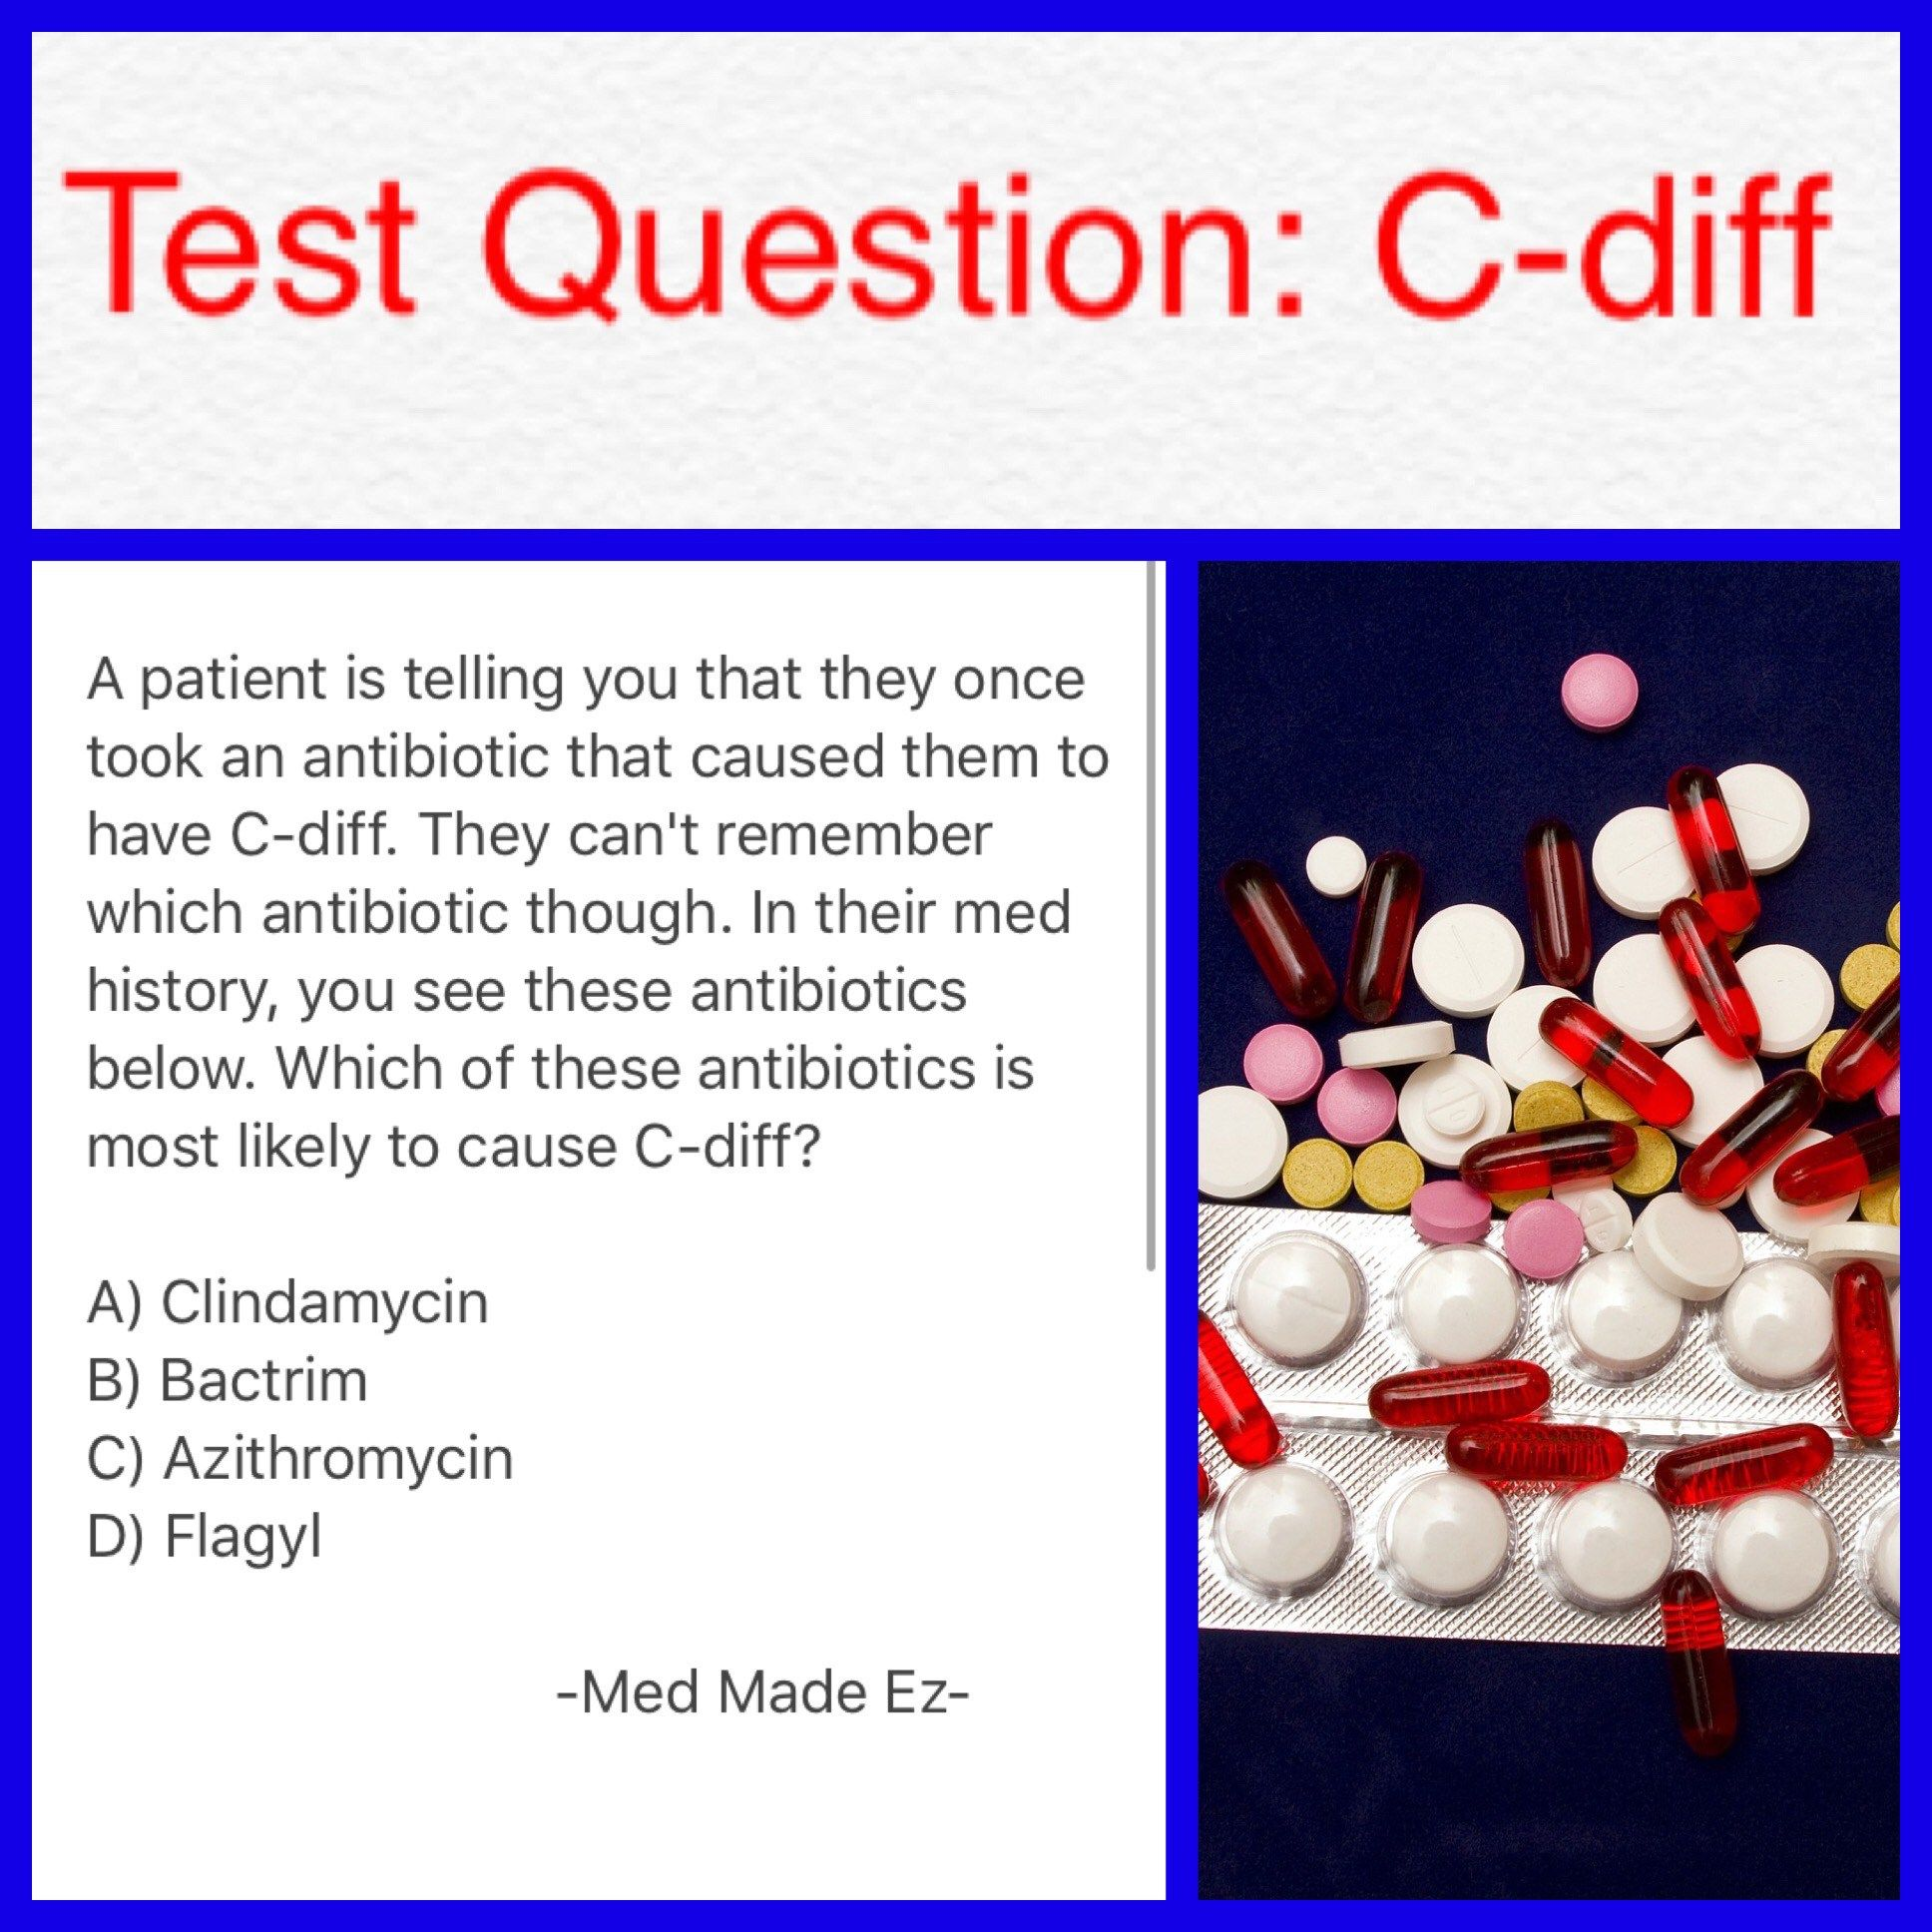 Testquestionc diff nursing pinterest nclex and medical nursing test question cdiff which antibiotic is most likely to cause c diff from the choices listed in this question fandeluxe Choice Image